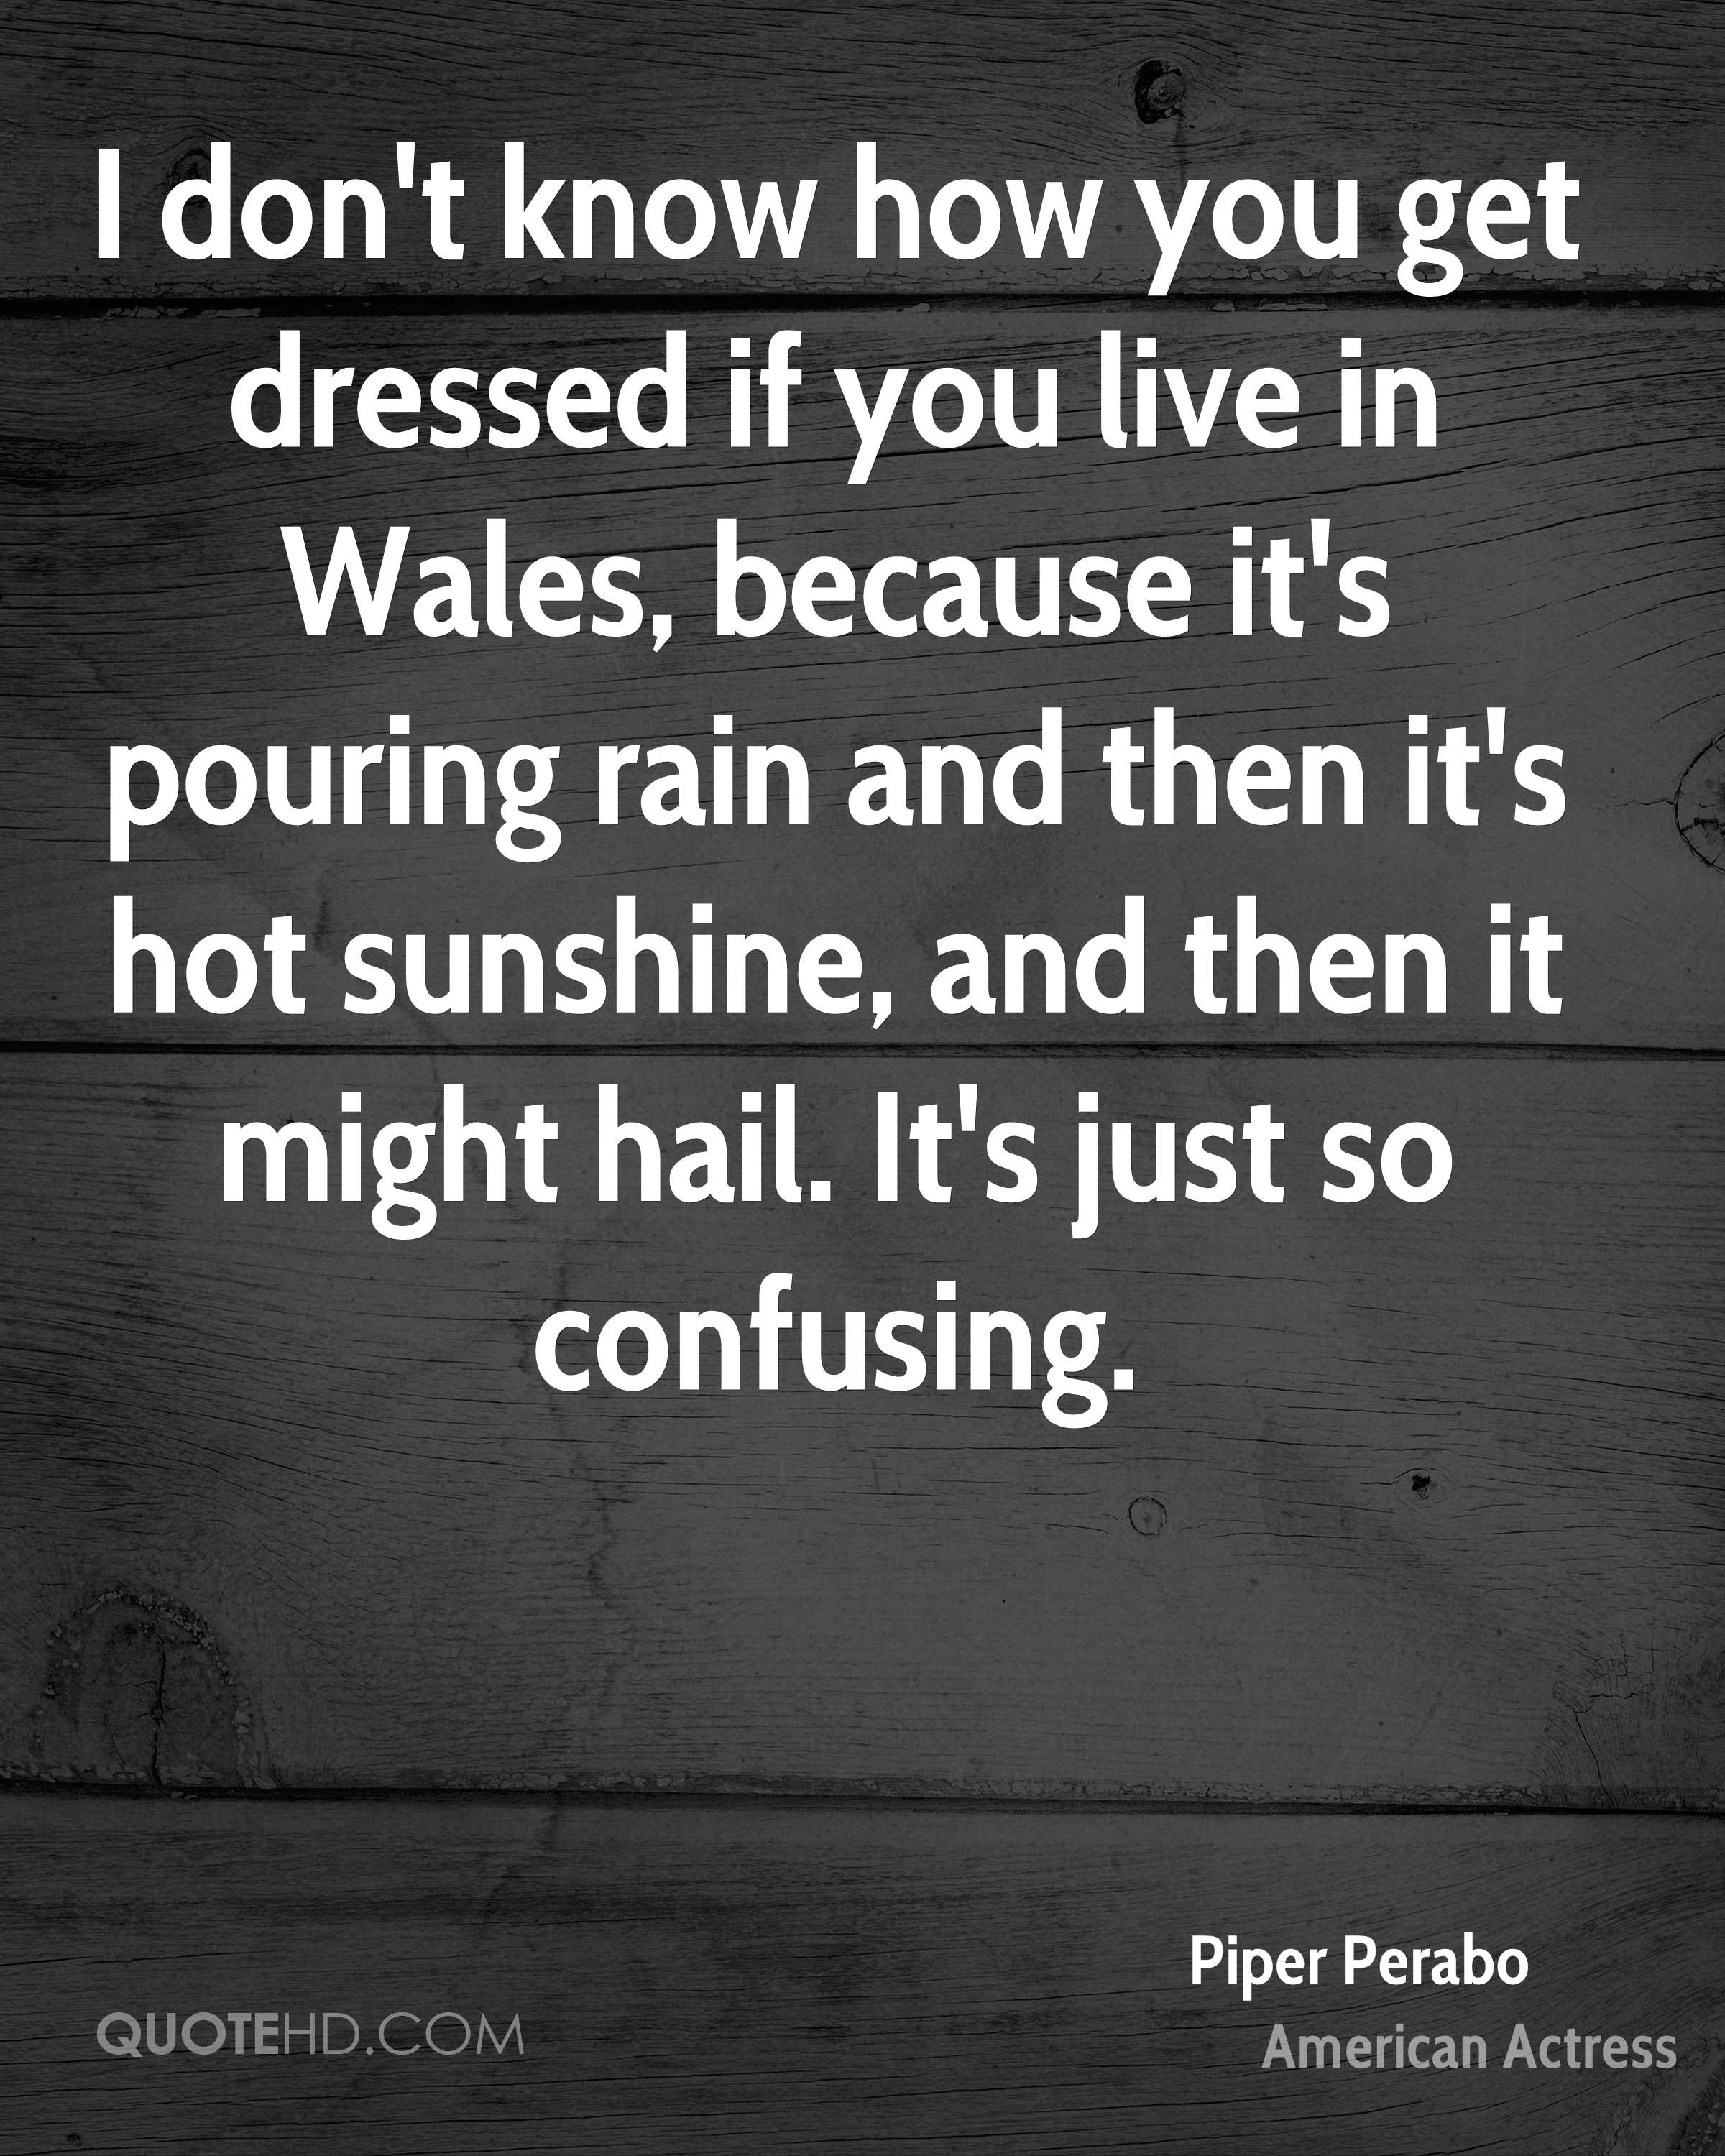 I don't know how you get dressed if you live in Wales, because it's pouring rain and then it's hot sunshine, and then it might hail. It's just so confusing.